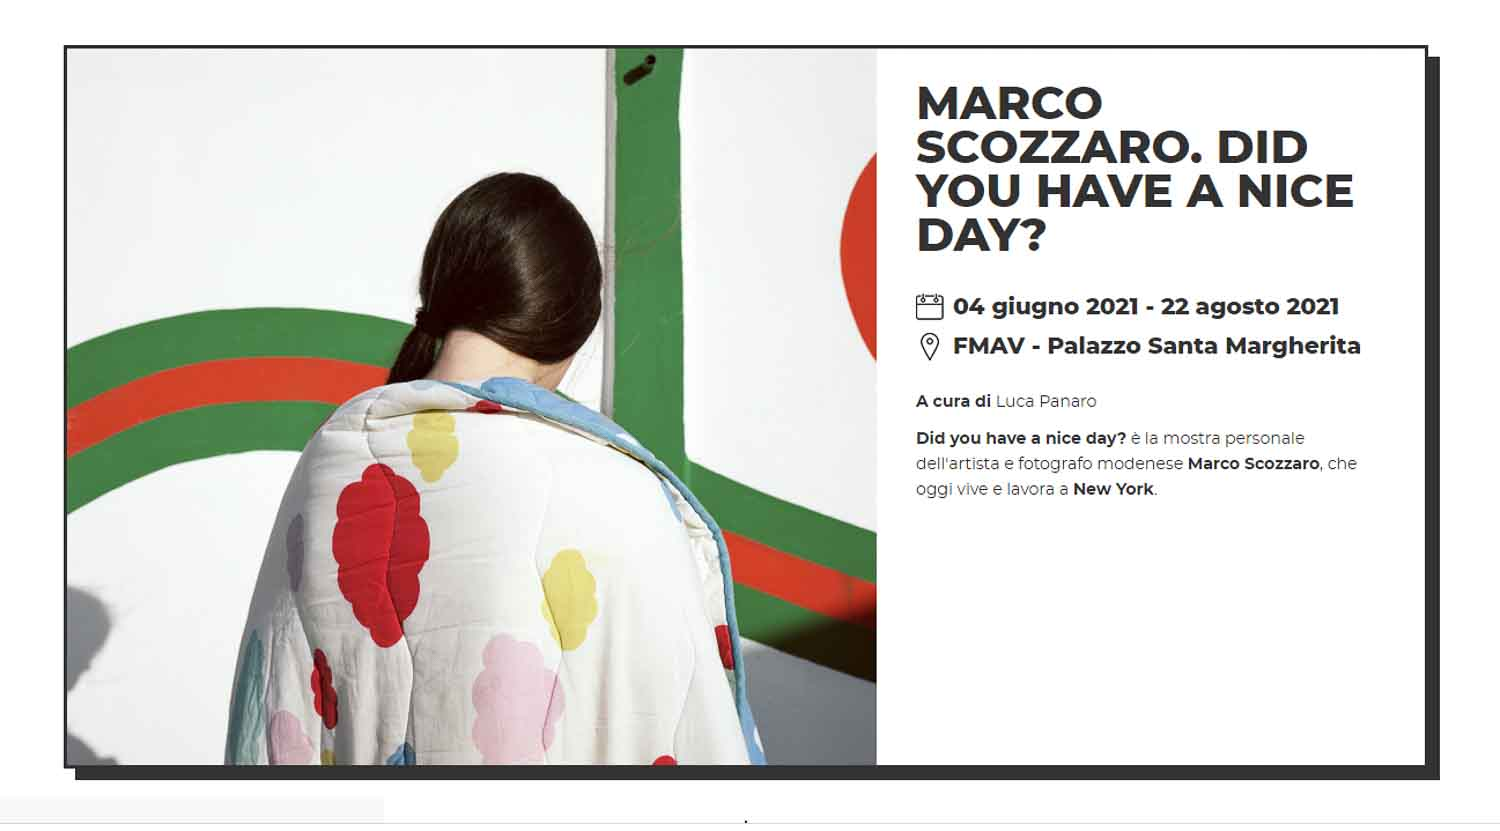 Marco Scozzaro Did you have a nice day?